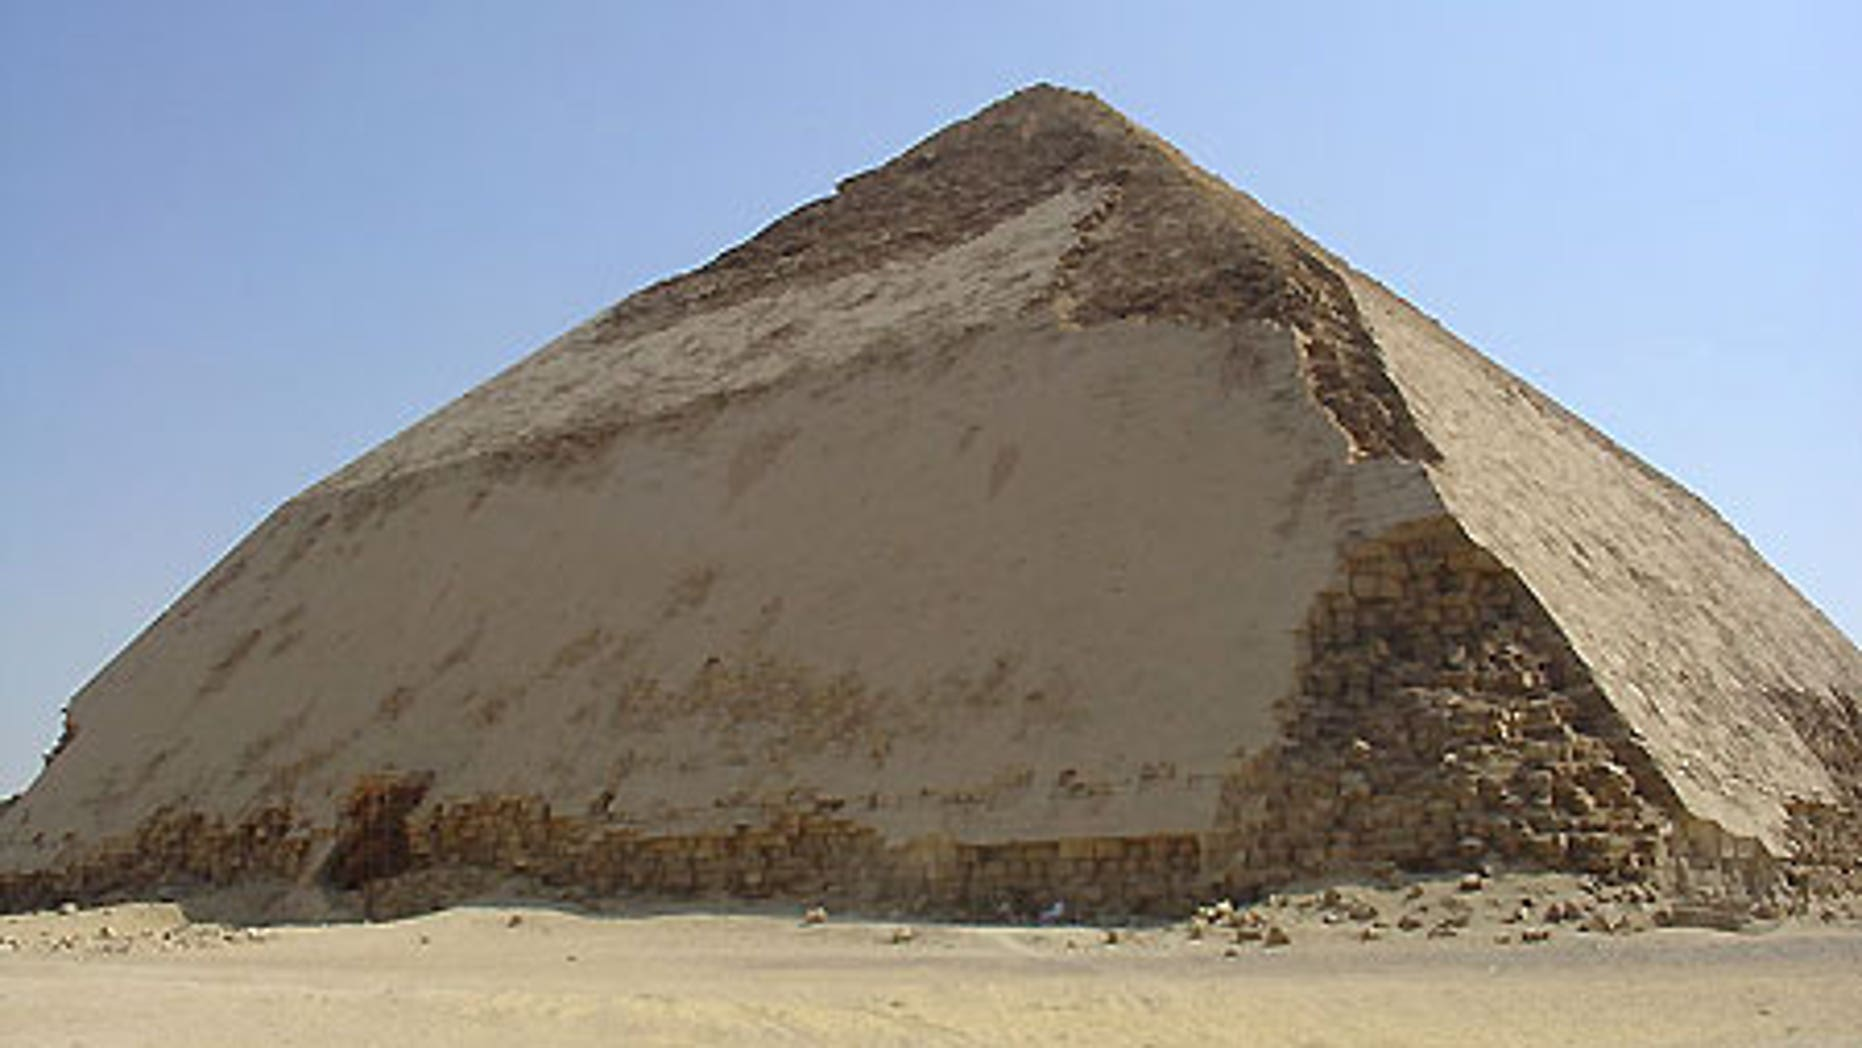 The famous Bent Pyramid constructed by the 4th-dynasty pharaoh Sneferu in about 2600 B.C. in Dahshur, 50 miles south of present-day Cairo.